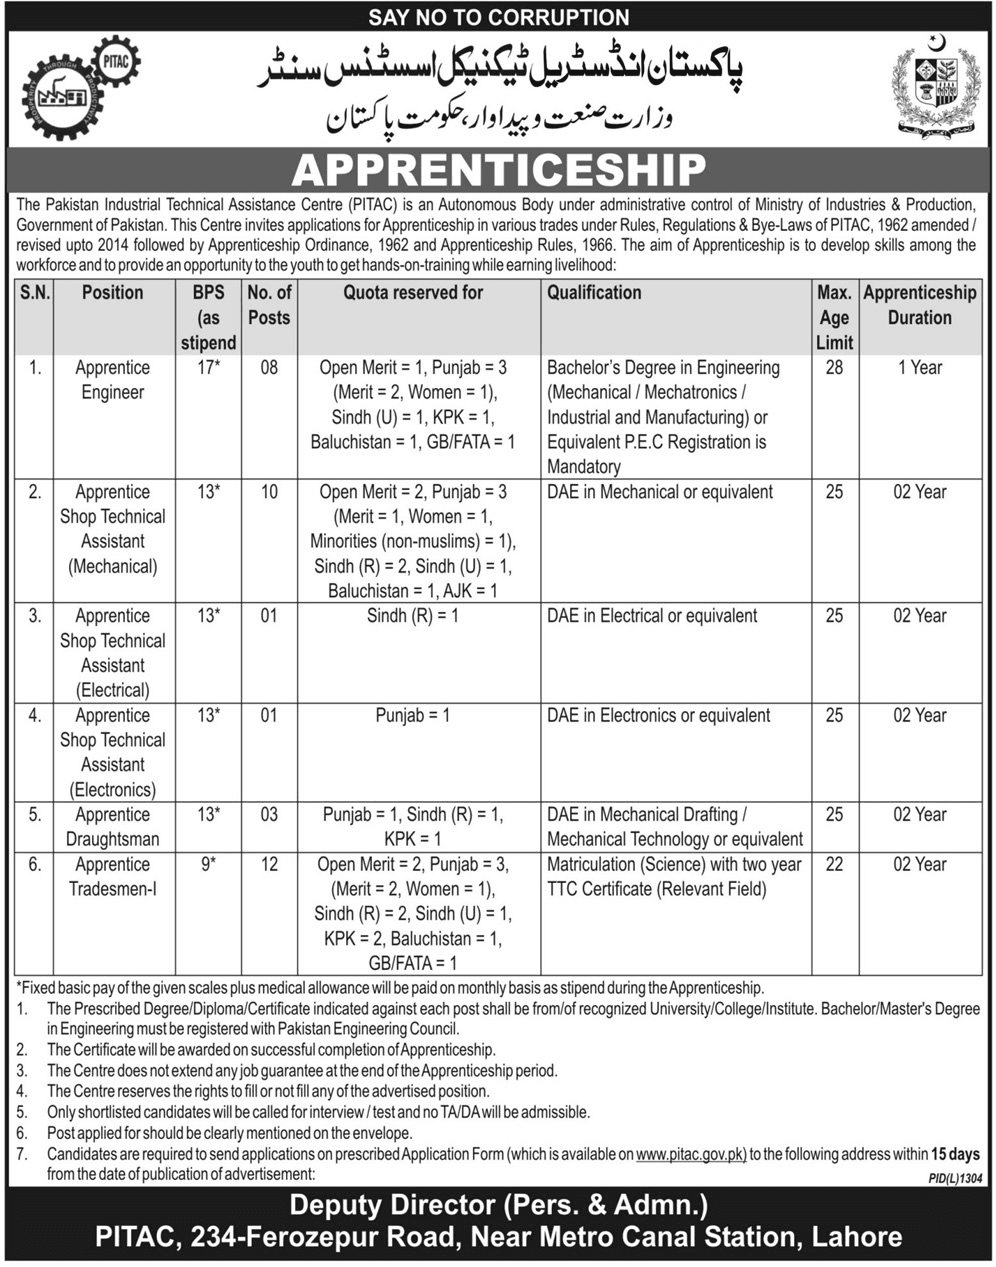 Jobs In Pakistan Industrial Technical Assistance Center PITAC Lahore Oct 2017